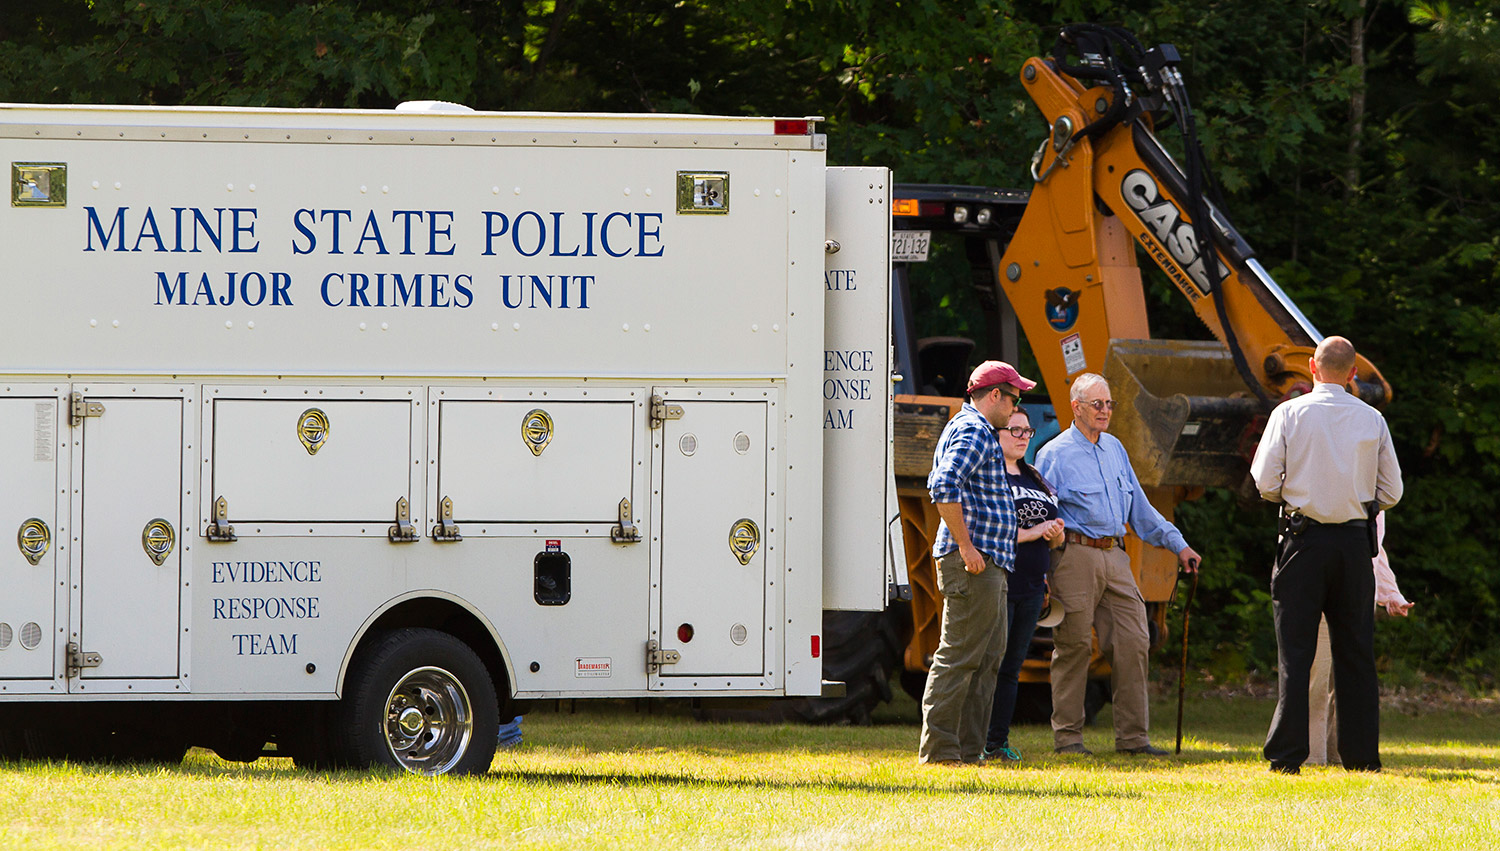 CANTON, ME - AUGUST 9:  Investigators conference near the state police major crime unit truck at thesearch scene for Kimberly Moreau near Rt 108 in Canton, Maine on Sunday, August 9, 2015. A back hoe was among the equipment used to dig for evidence in case. Kim has been missing since 1986. (Photo by Carl D. Walsh)